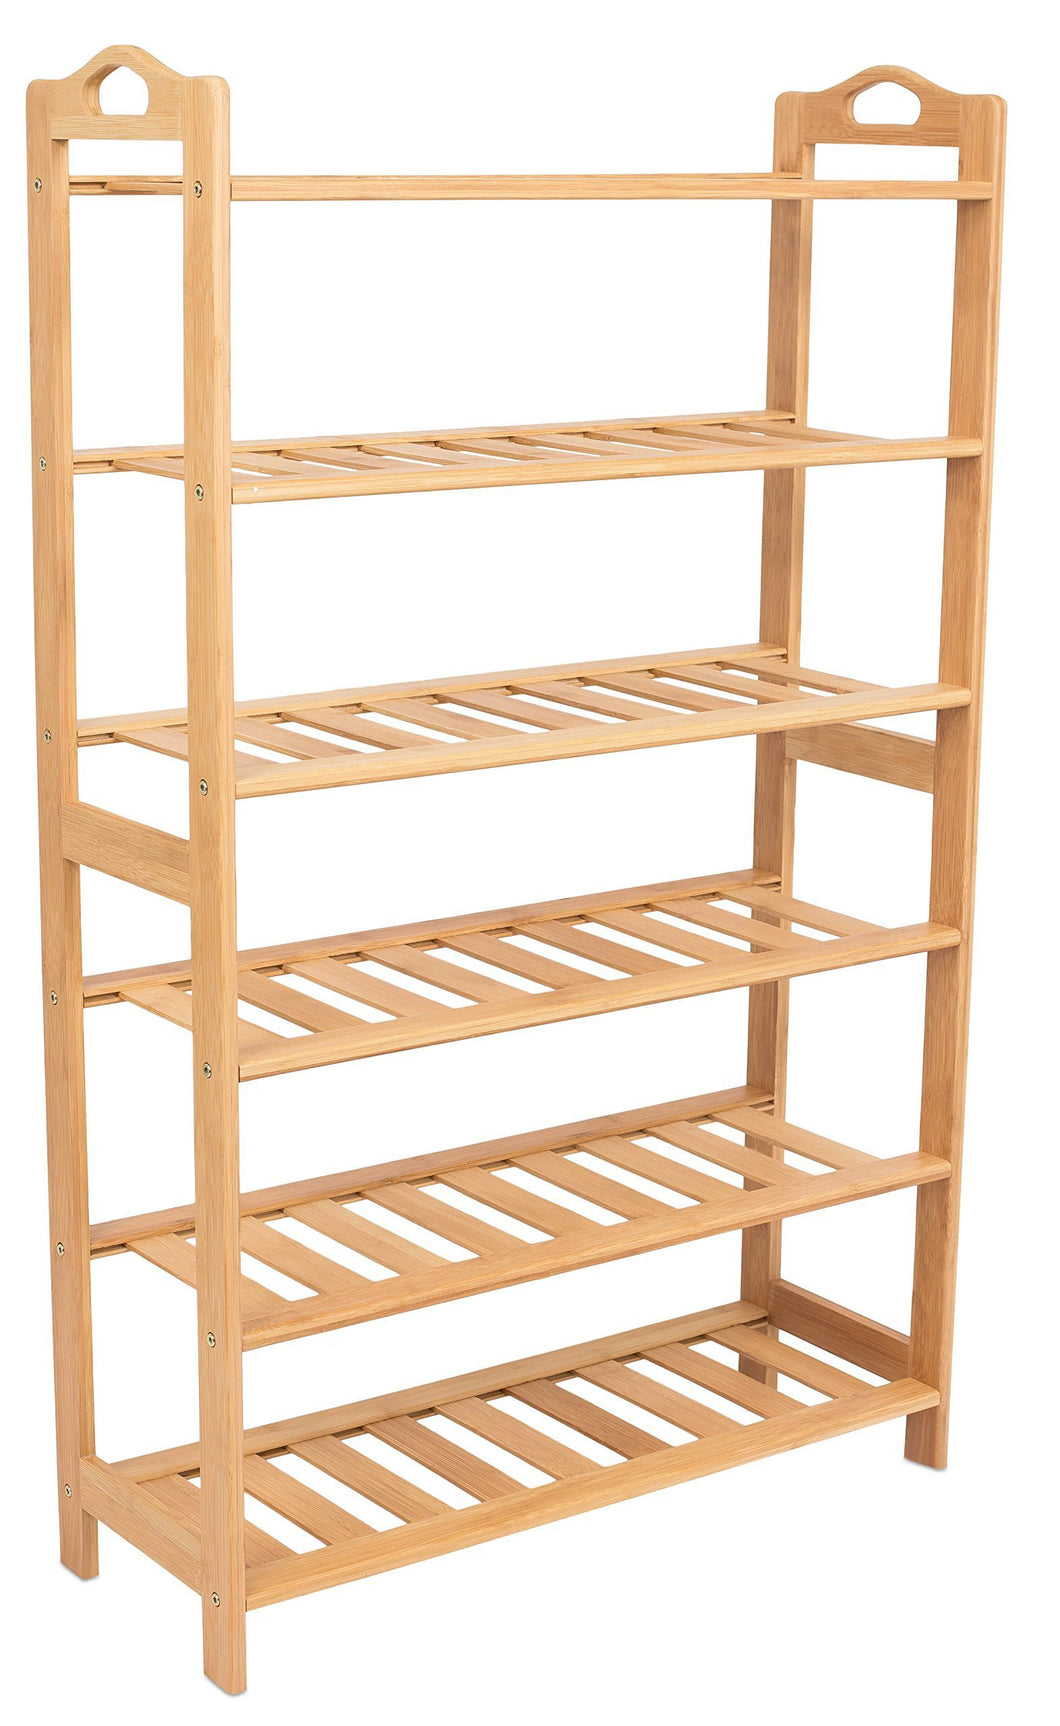 Exclusive birdrock home free standing bamboo shoe rack with handles 6 tier wood closets and entryway organizer fits 18 pairs of shoes